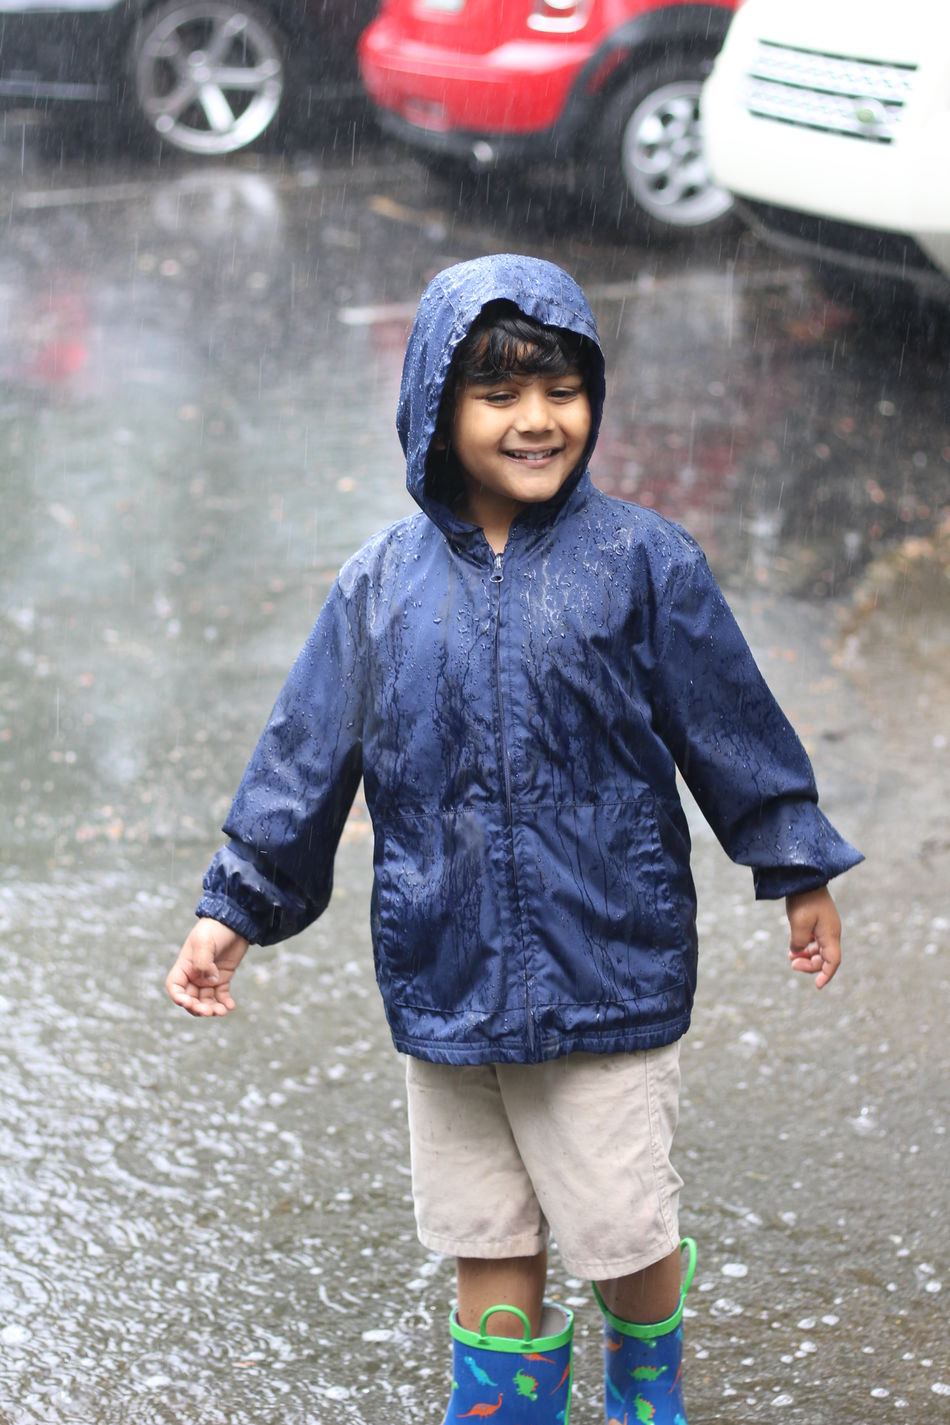 Boys Childhood Day Front View Full Length Happiness Lifestyles Looking At Camera One Boy Only One Person Outdoors People Portrait Rain Real People Smiling Standing Warm Clothing Weather Wet